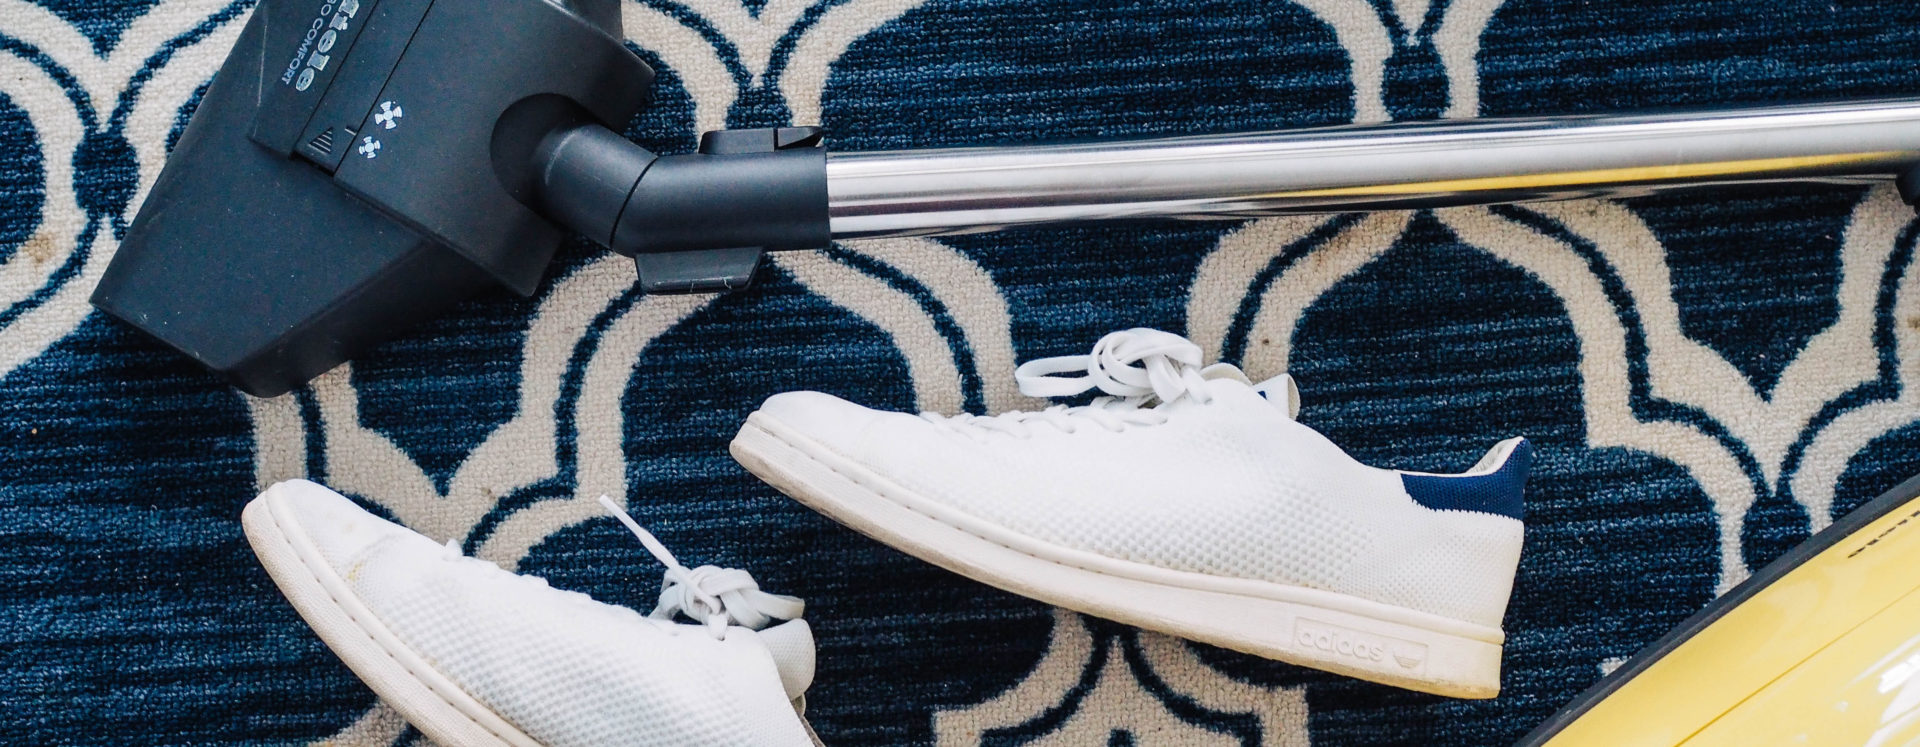 5 Benefits of Using a Carpet Cleaning Algester Company